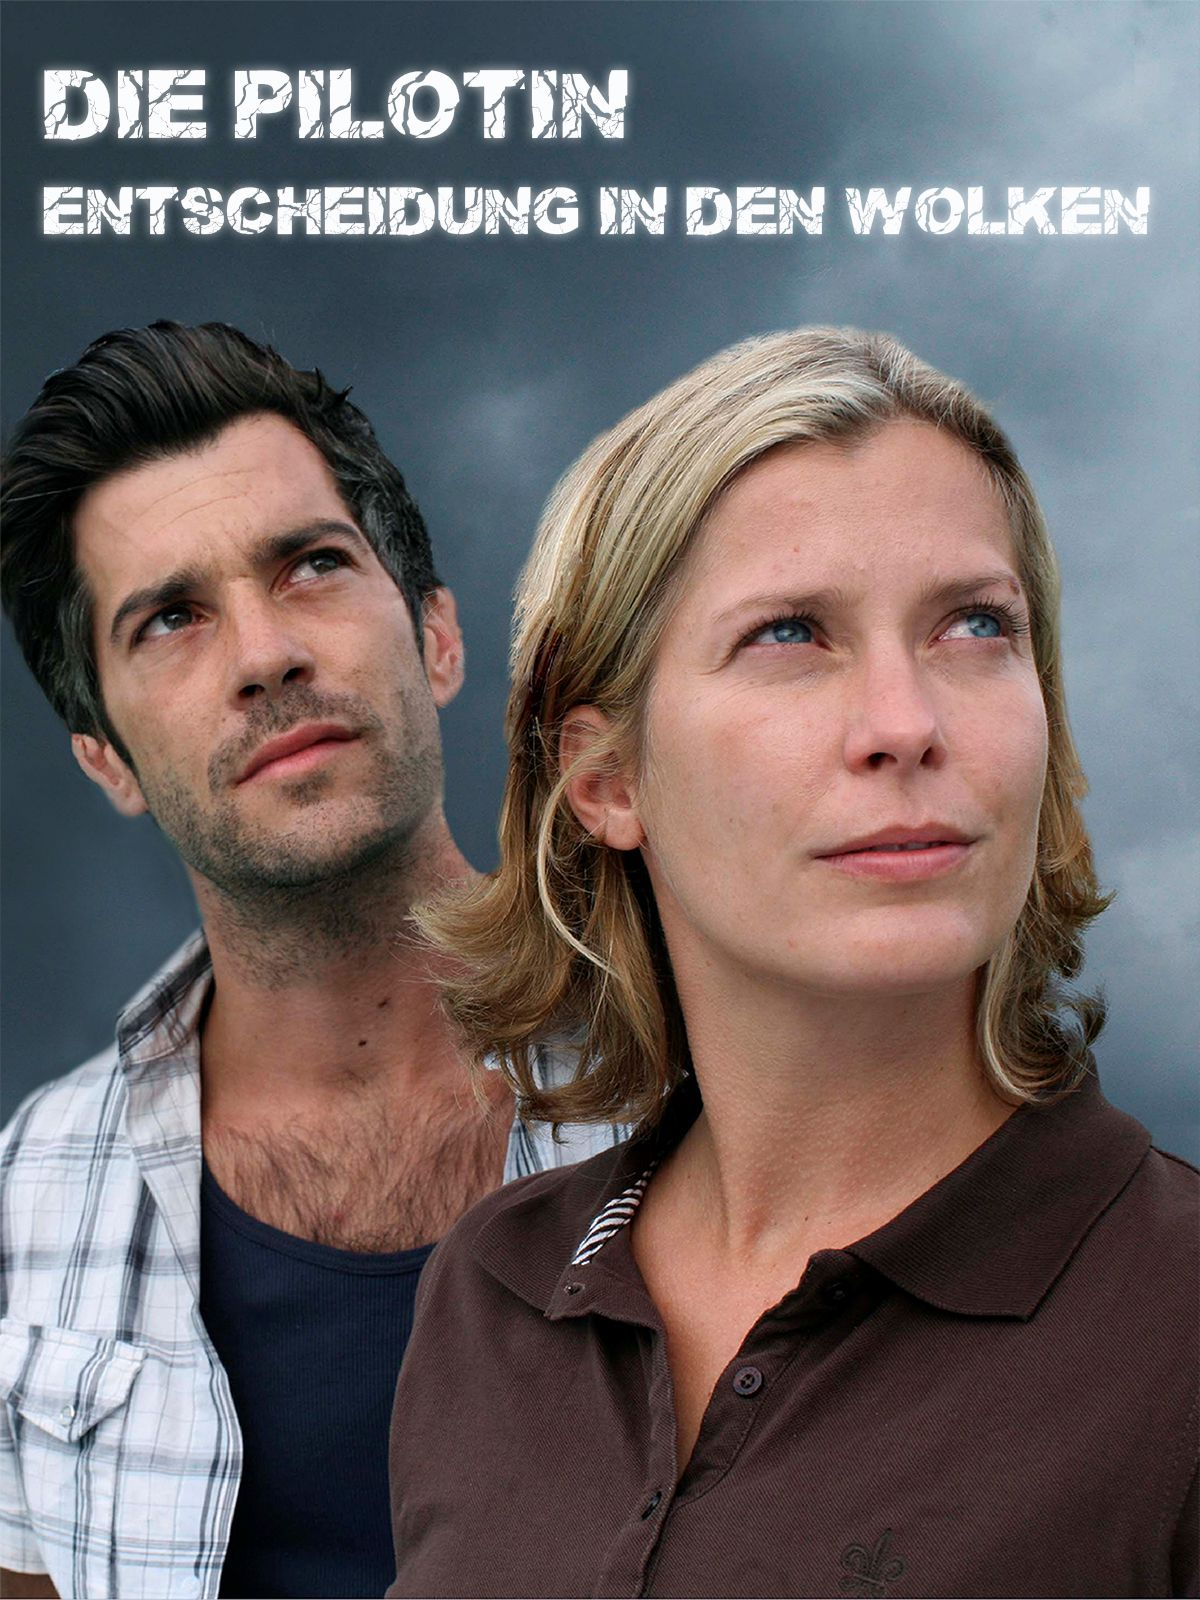 Les ailes du courage (CLOUD CHASERS) (2009) avec Manuel Witting, Xaver Hutter, Max Tidof, Jan Sosniok